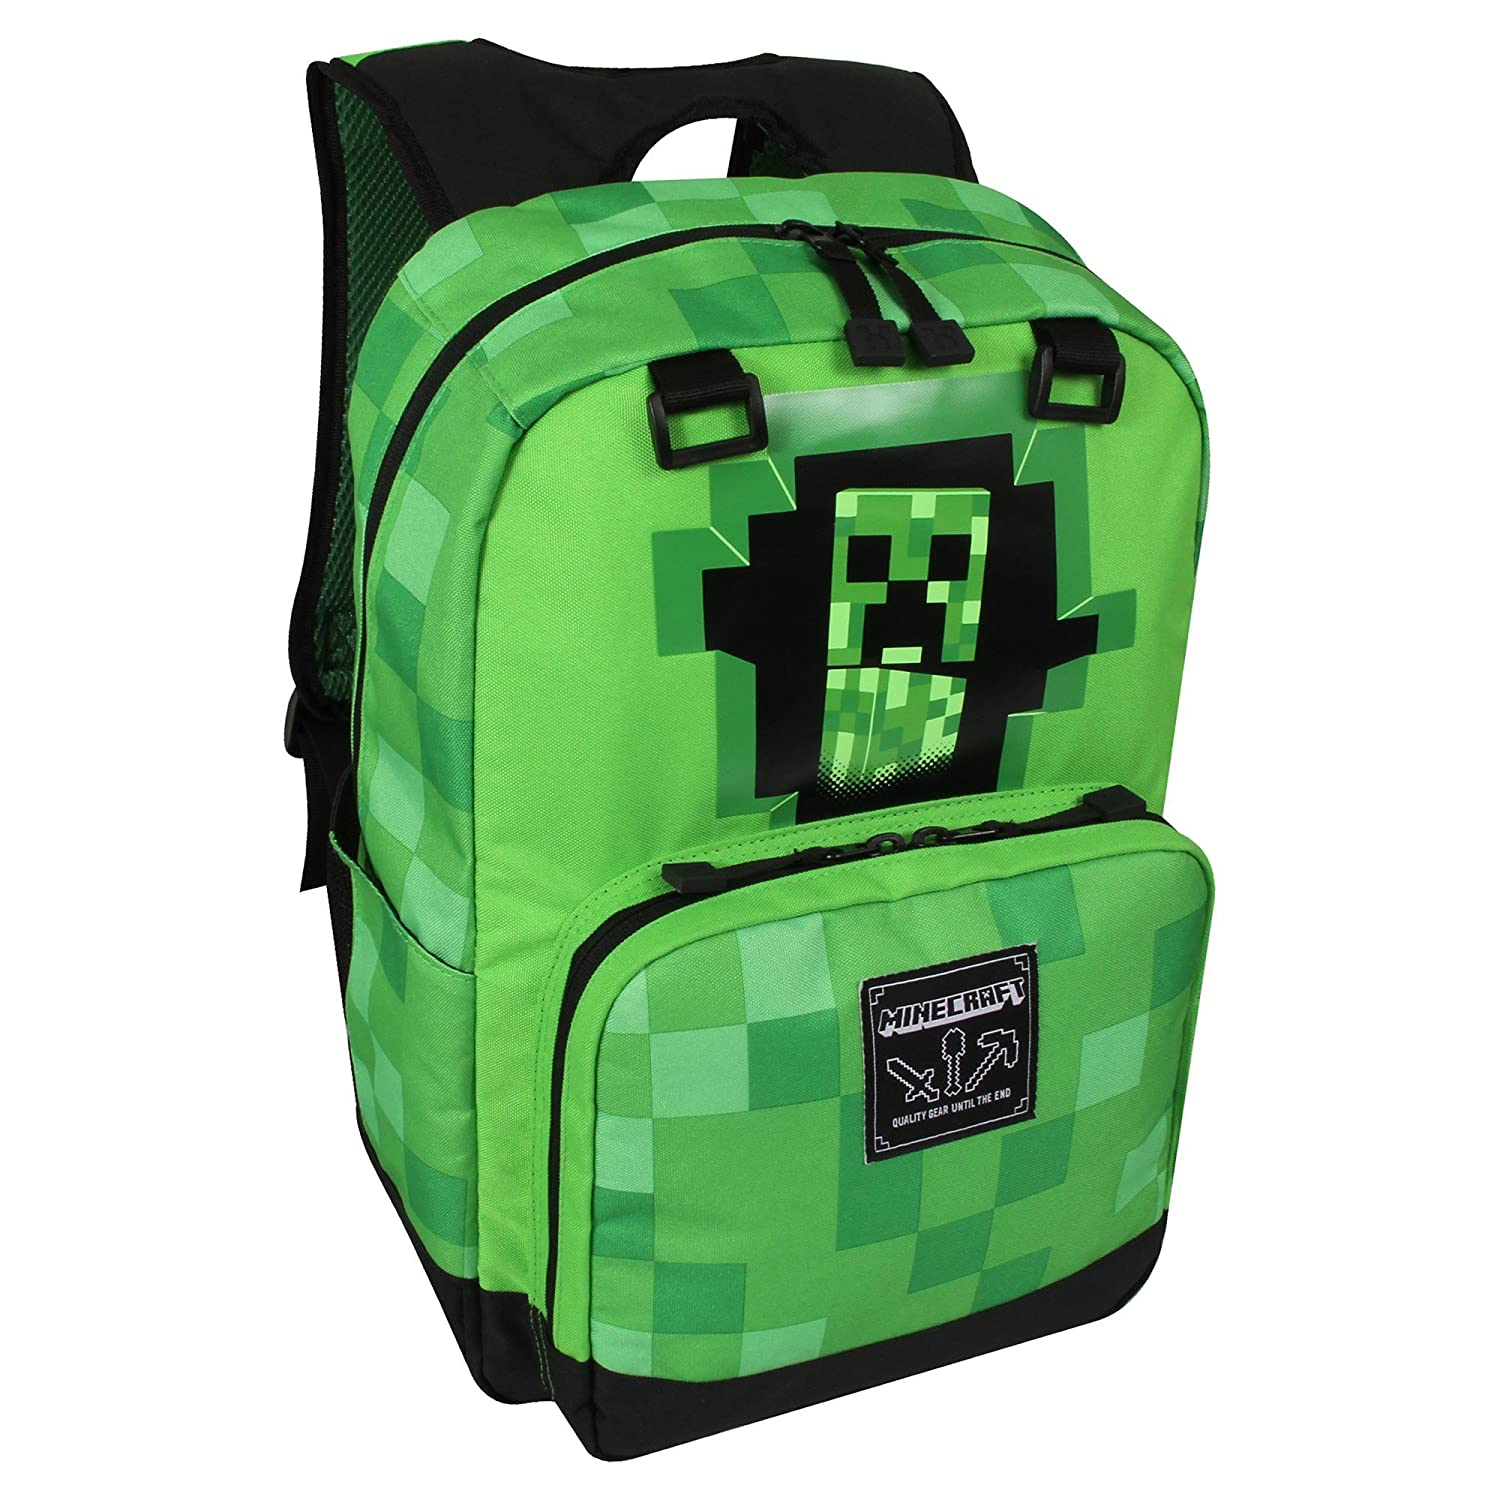 JINX Minecraft Creepy Creeper Kids Backpack (Green, 17) for School, Camping, Travel, Outdoors & Fun 17) for School 806409557721